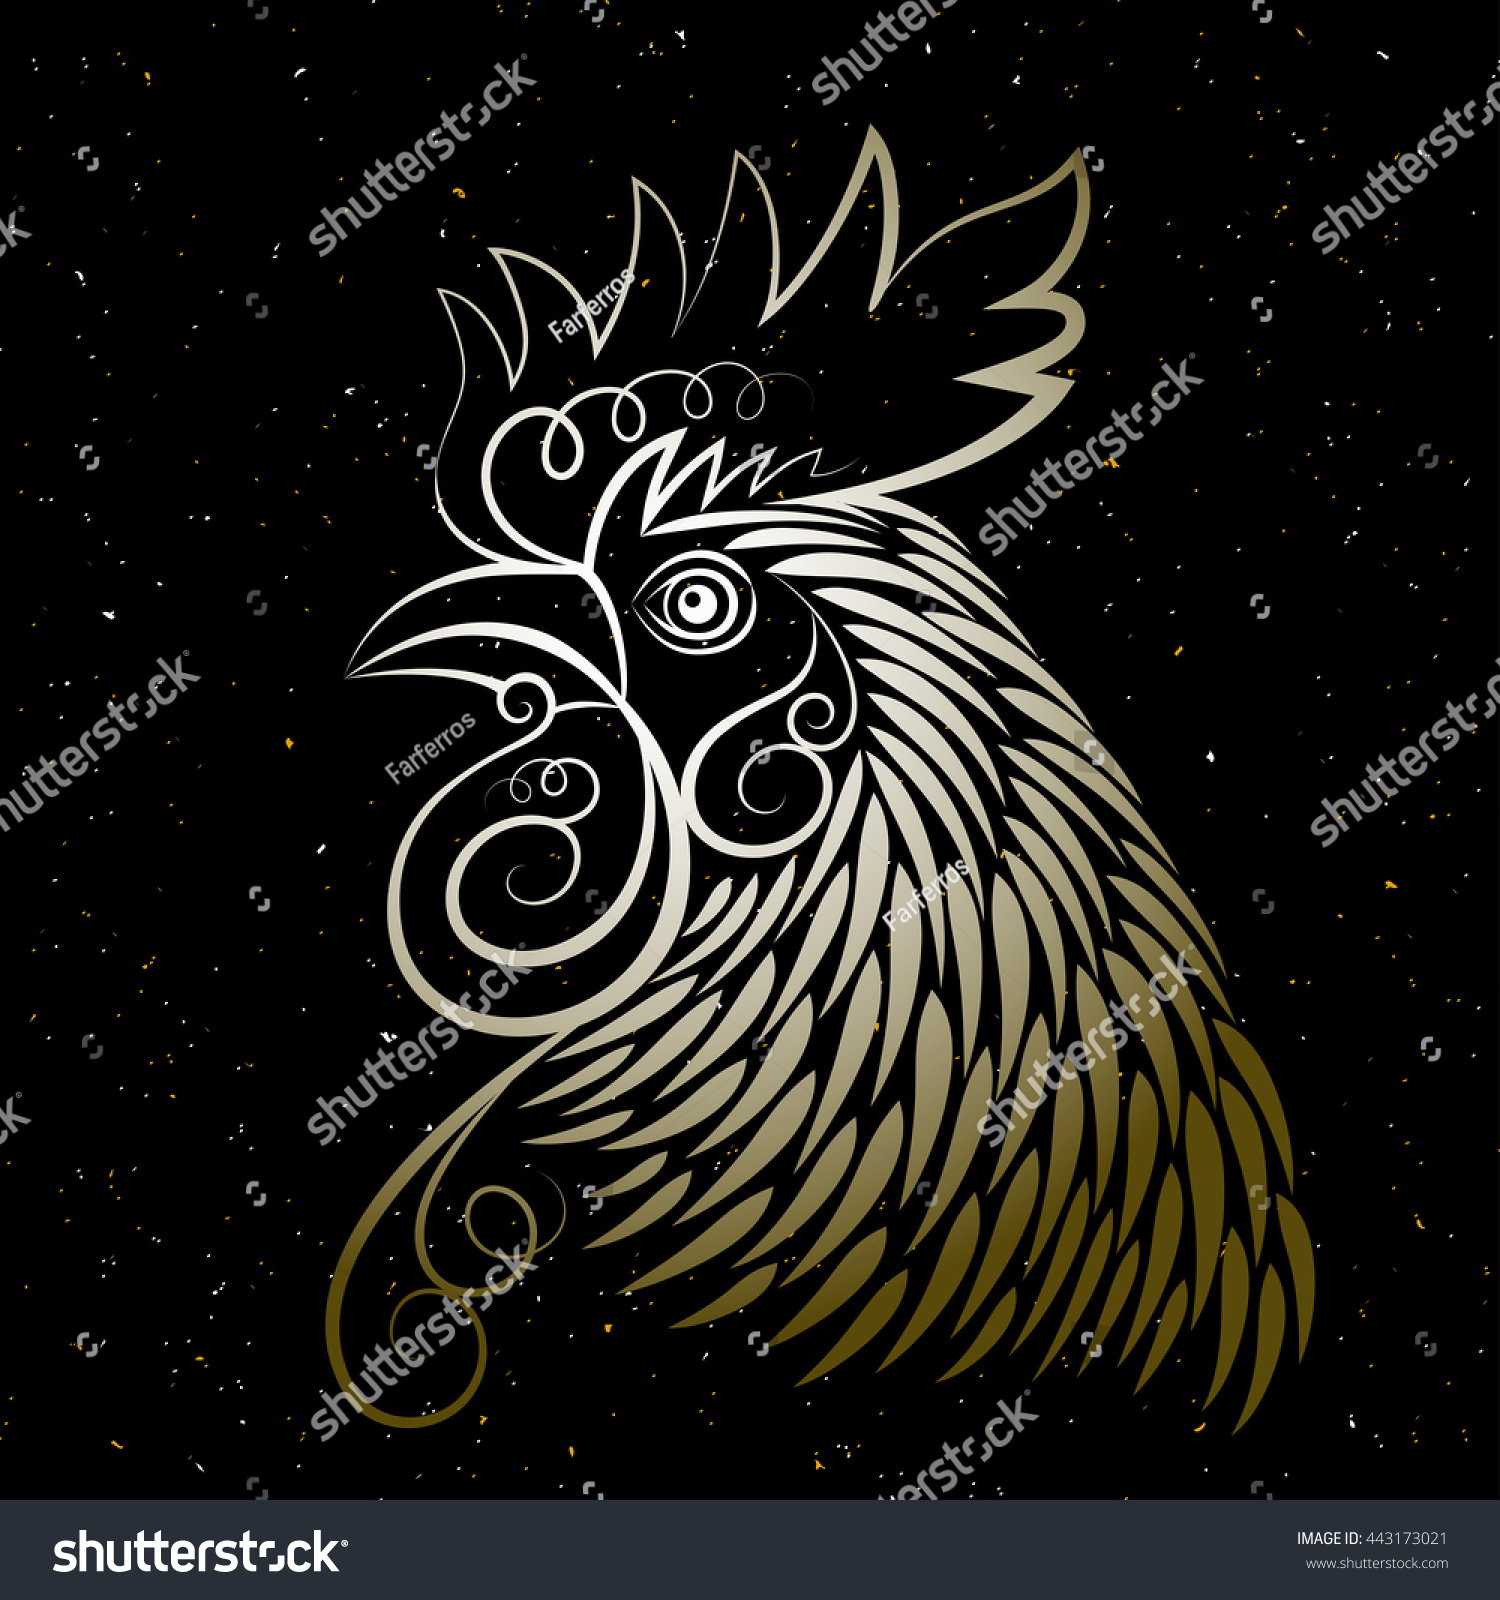 Calendar Head Design : Vector design chinese calendar year rooster stock